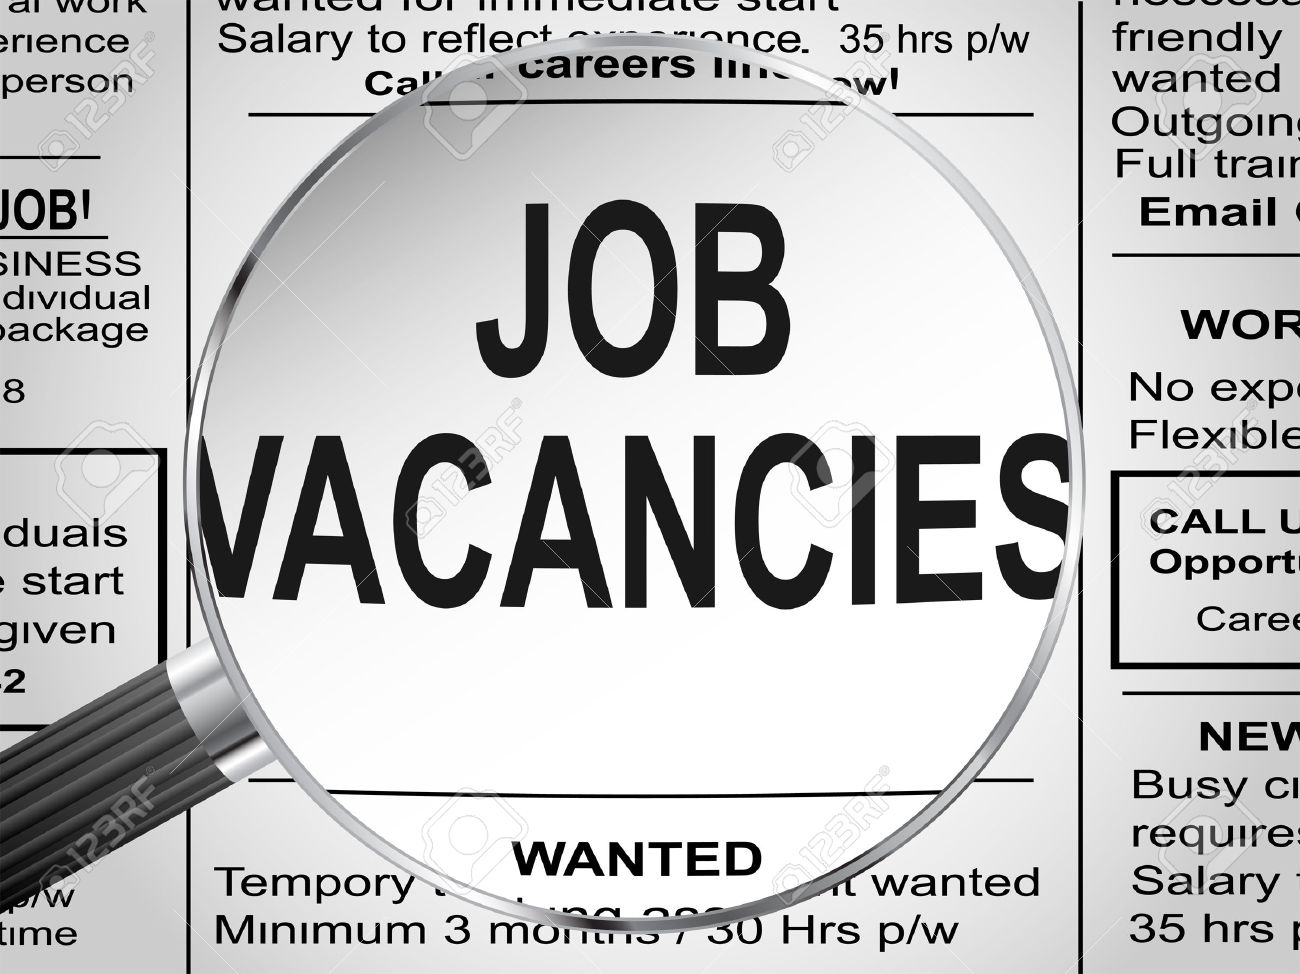 Newspaper clipping Jobs vacancies under magnifying glass Vector illustration - 23315543